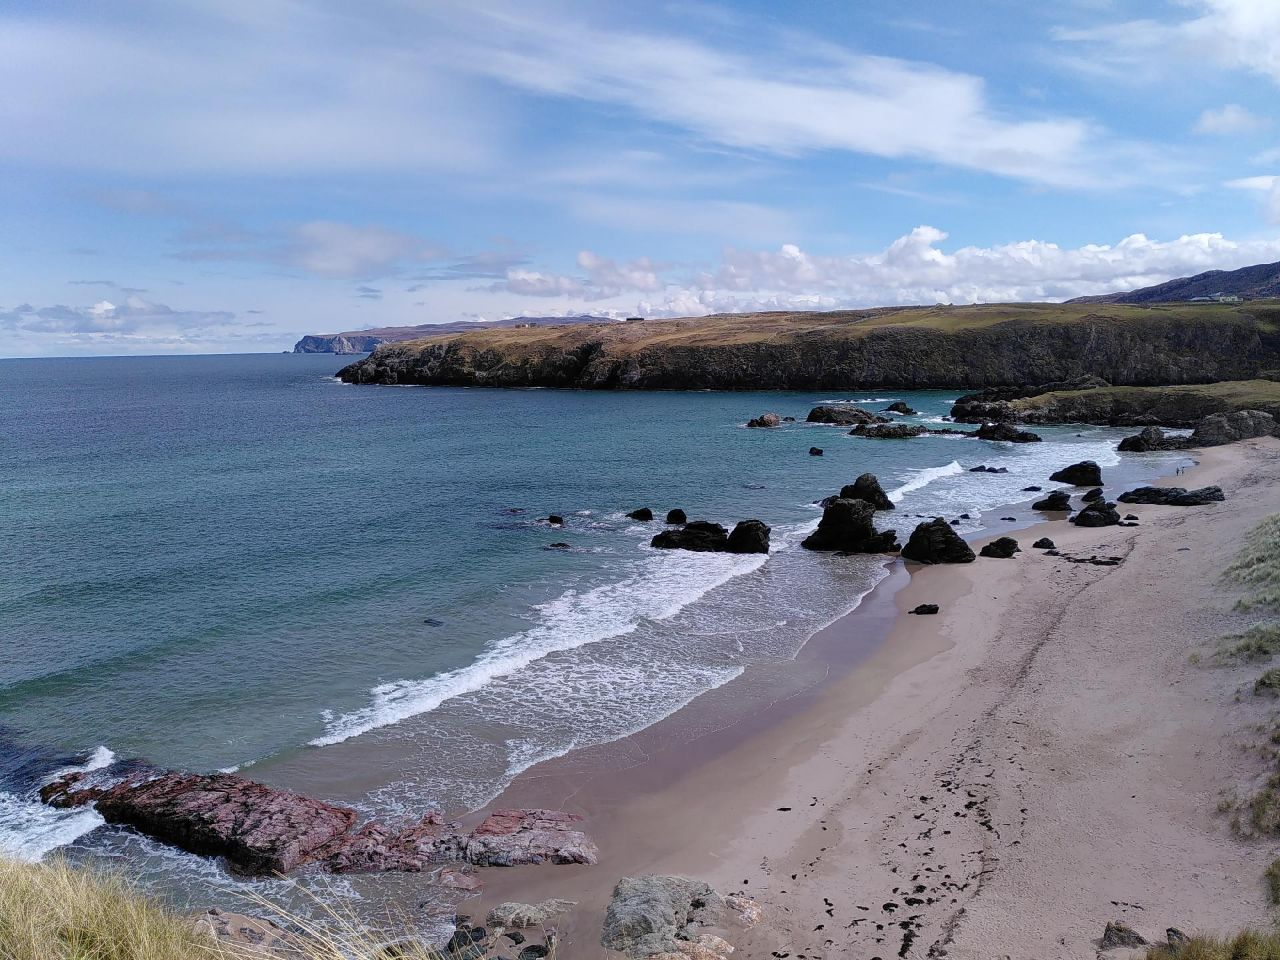 Looking down to a sandy beach which is peppered in its North corner by small stacks. The water is calm and stretches out to the left. Light, long clouds fill the sky and the top of the bay is met with a smal cliff-face.